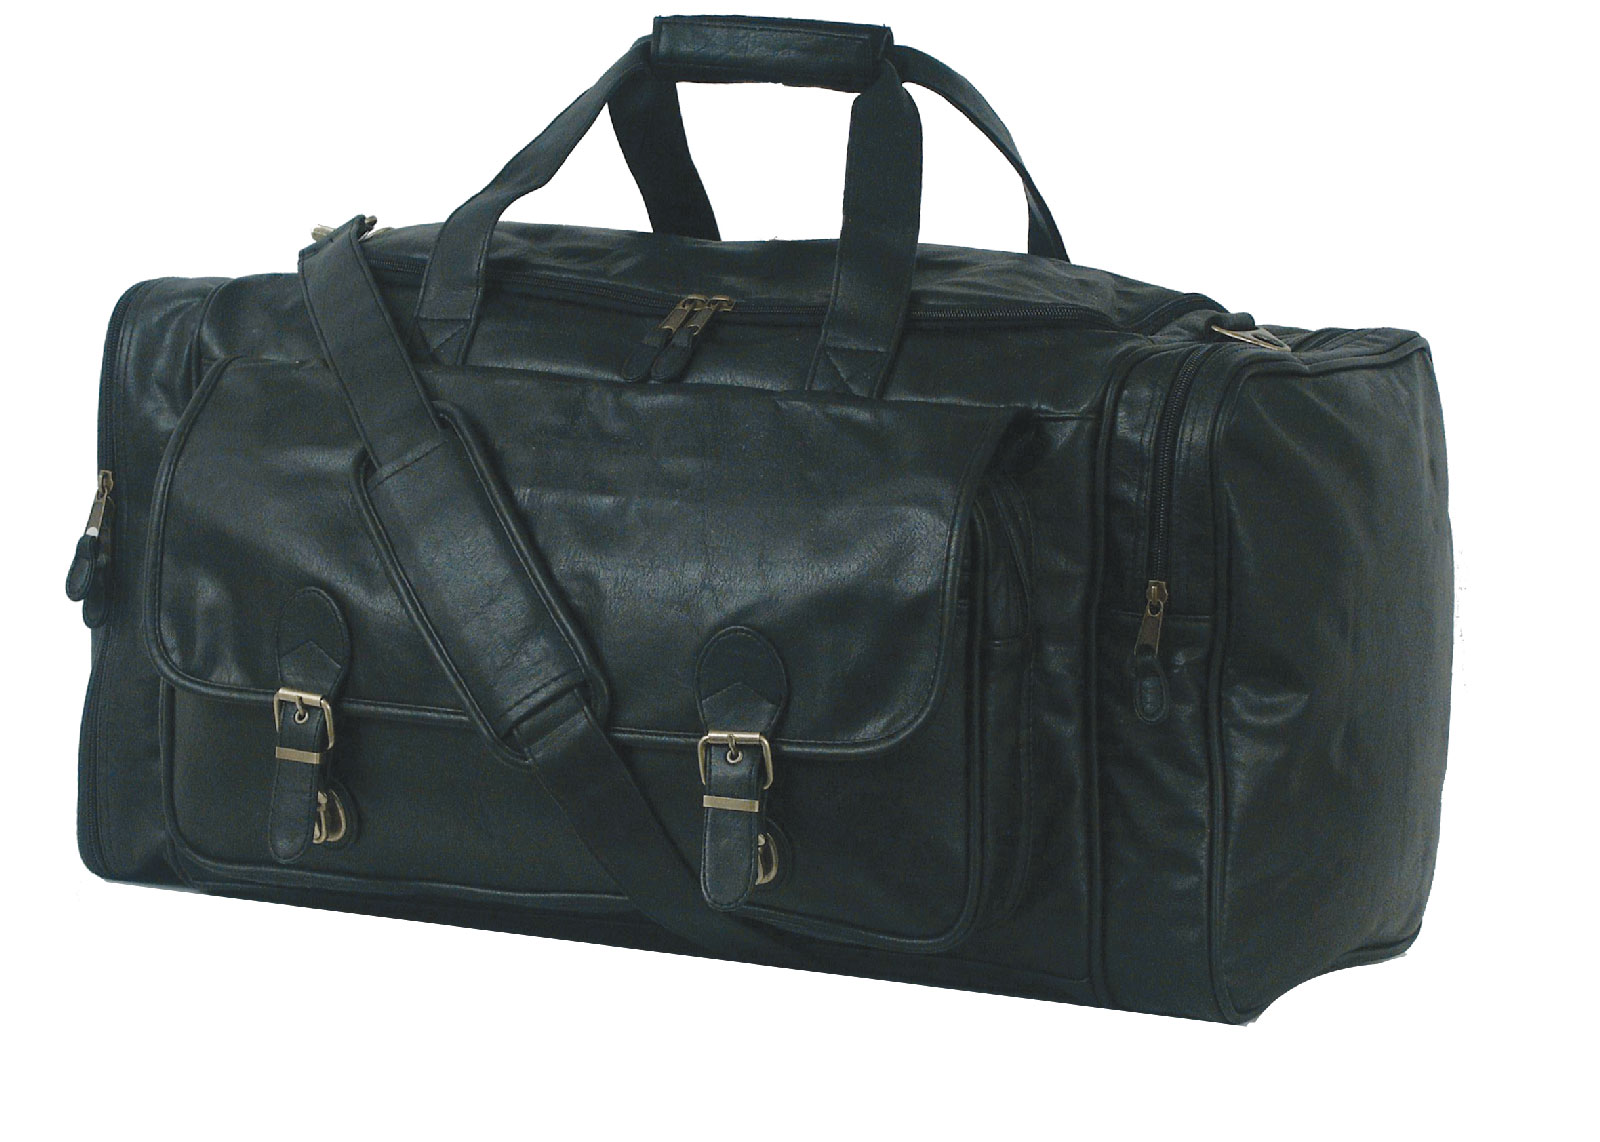 Large Travel Bags Leatherette Travel Duffel Bag Large In Duffle Bags